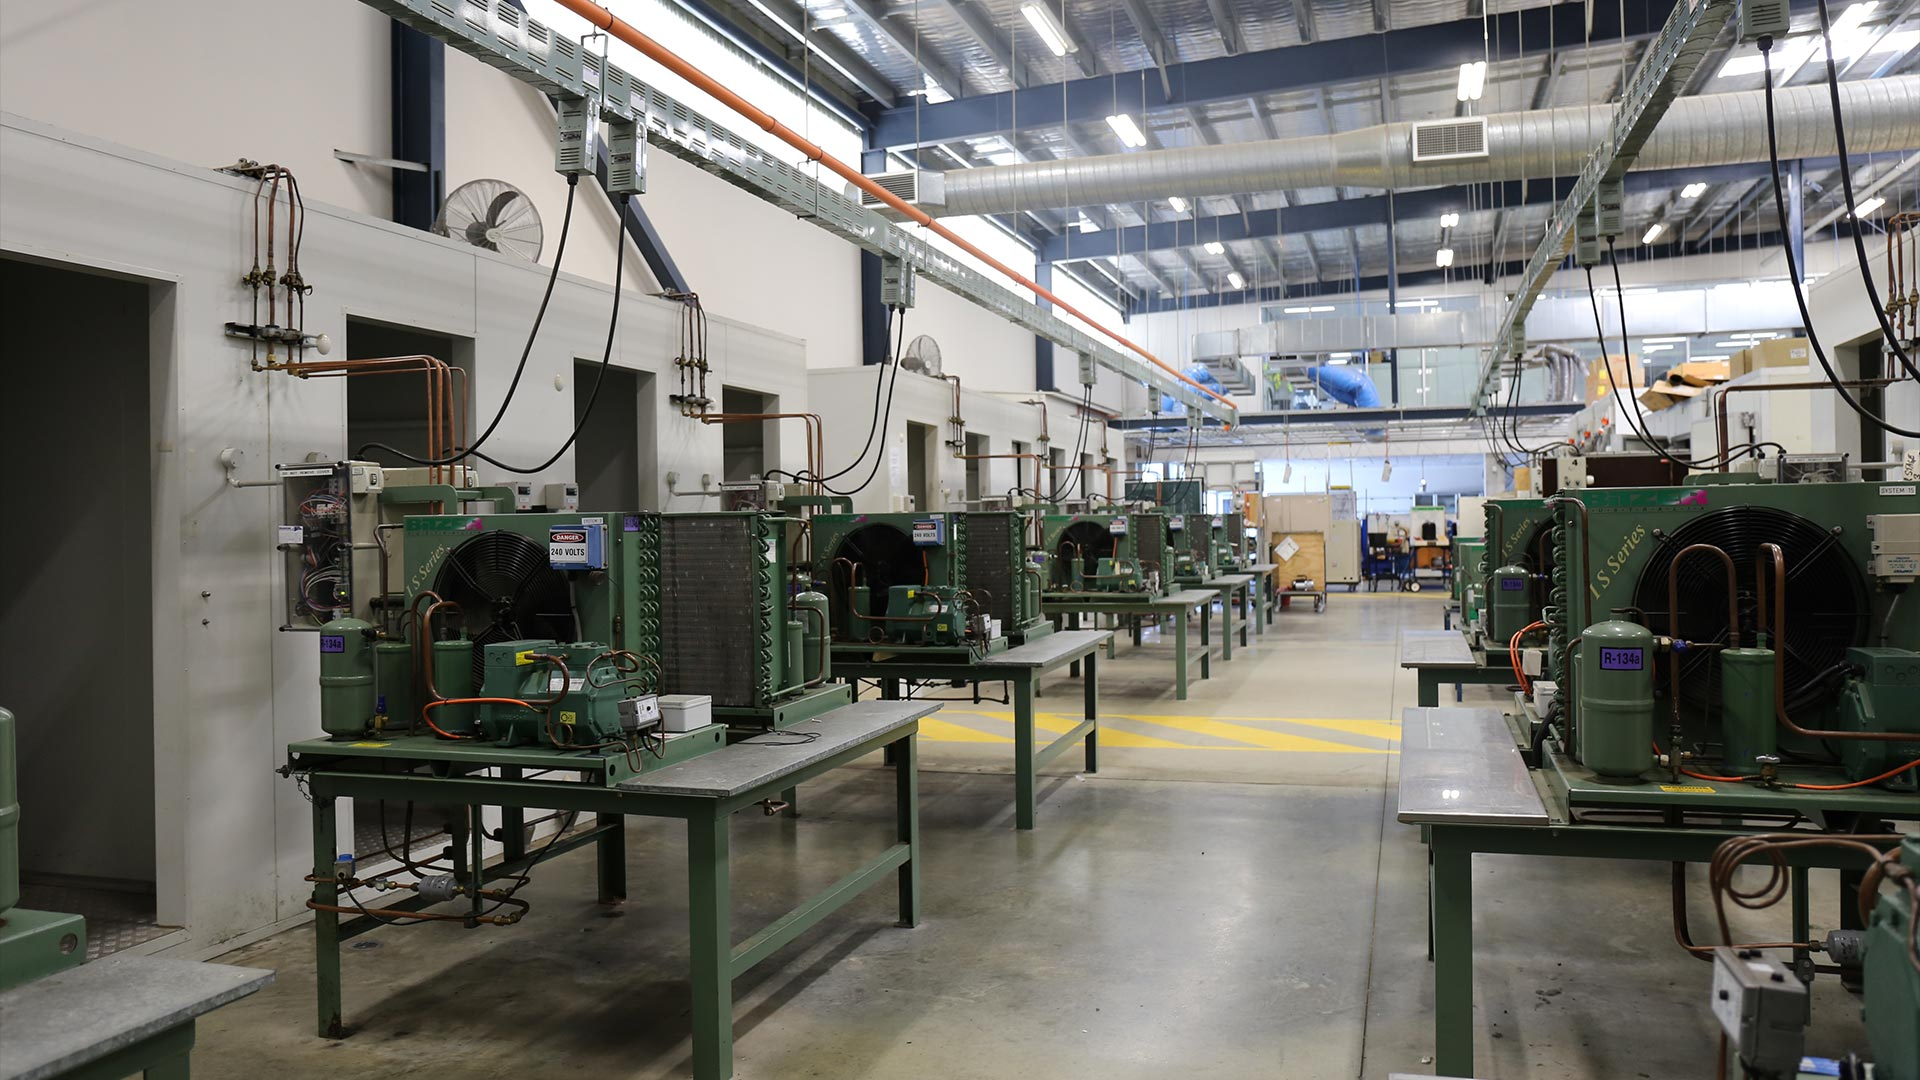 acacia-ridge-facilities-trade-facilities-air-conditioning-and-refrigeration-07.jpg